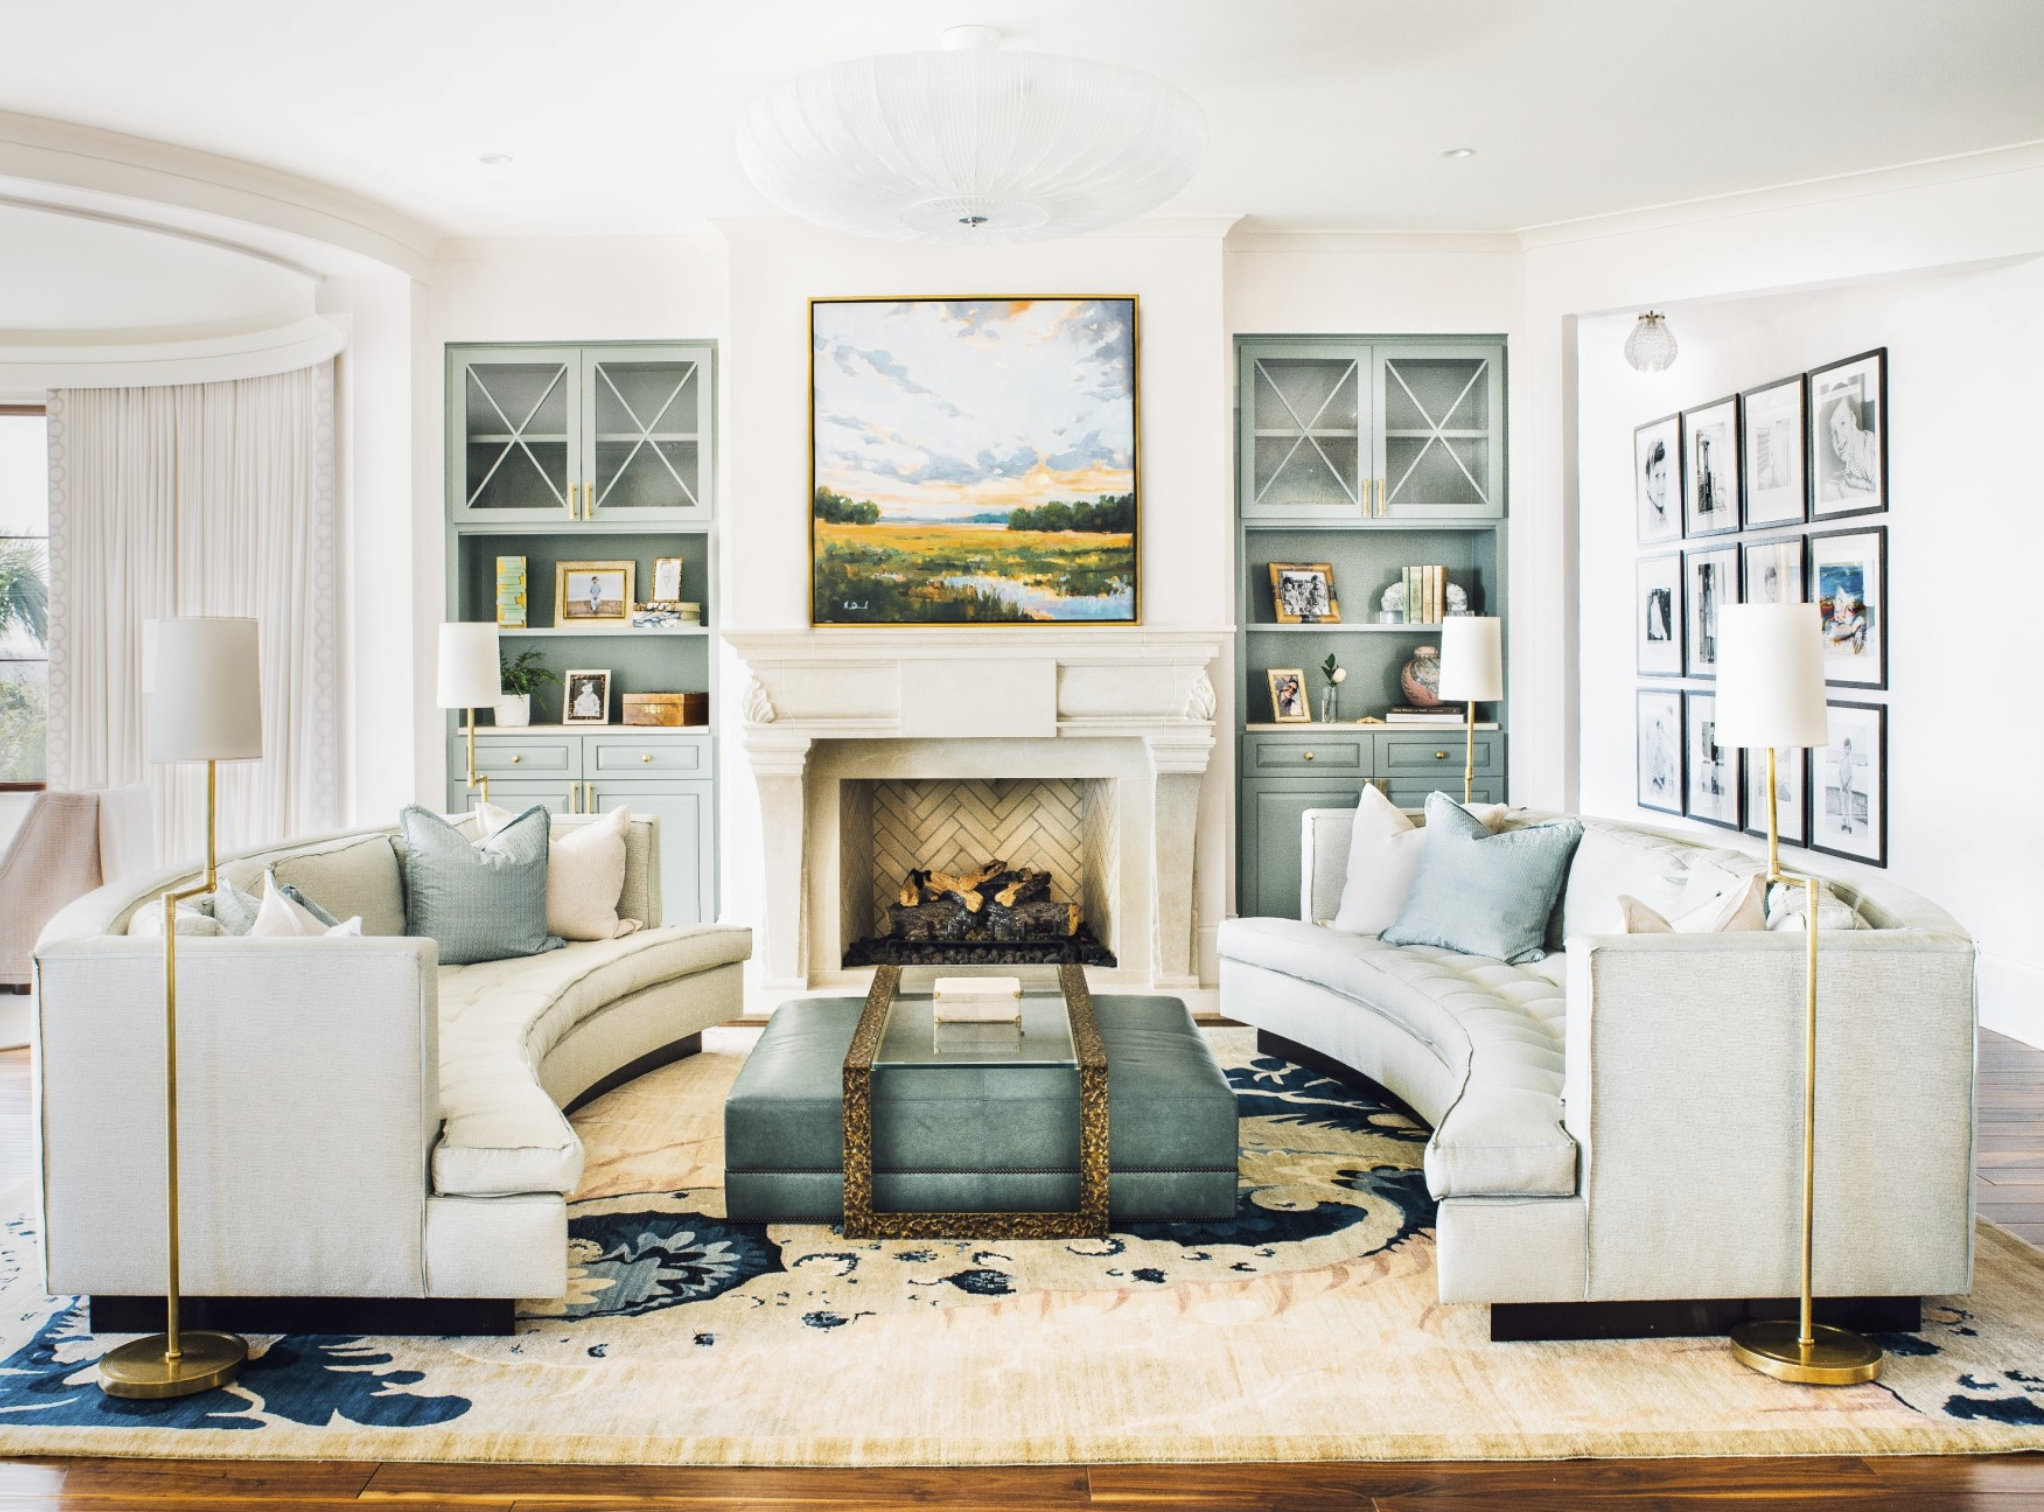 Best Beautiful Pale Blue Green And Neutral Light Living Room 400 x 300